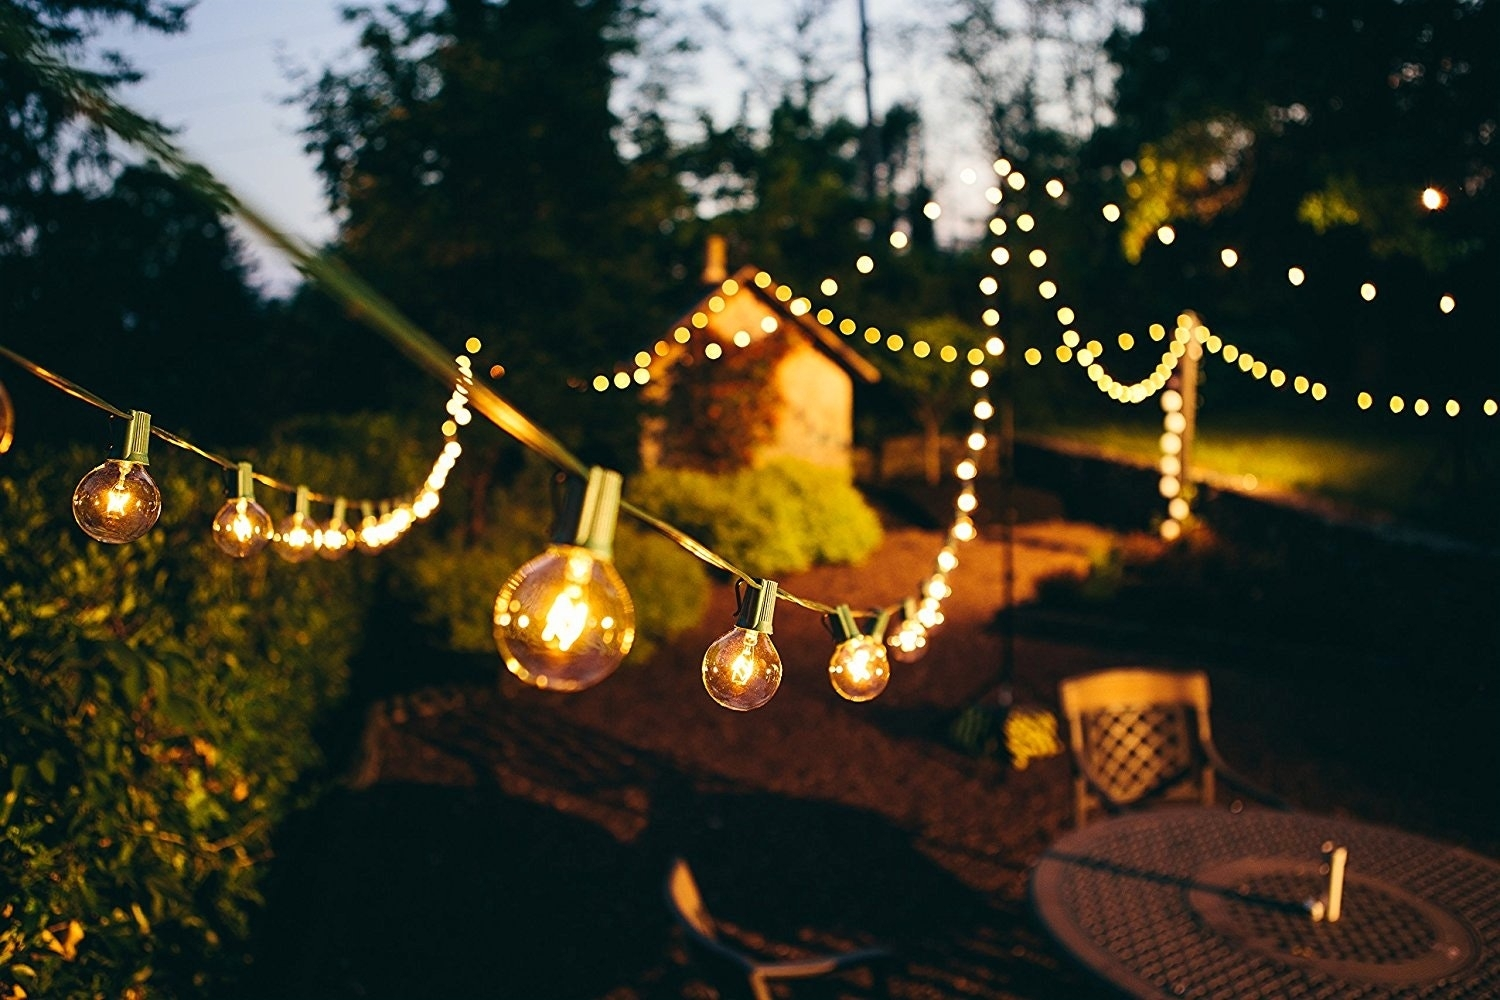 Top Outdoor Hanging Light Bulbs Ideas | Home Lighting – Fixtures Regarding Outdoor Hanging Lights Bulbs (View 4 of 15)